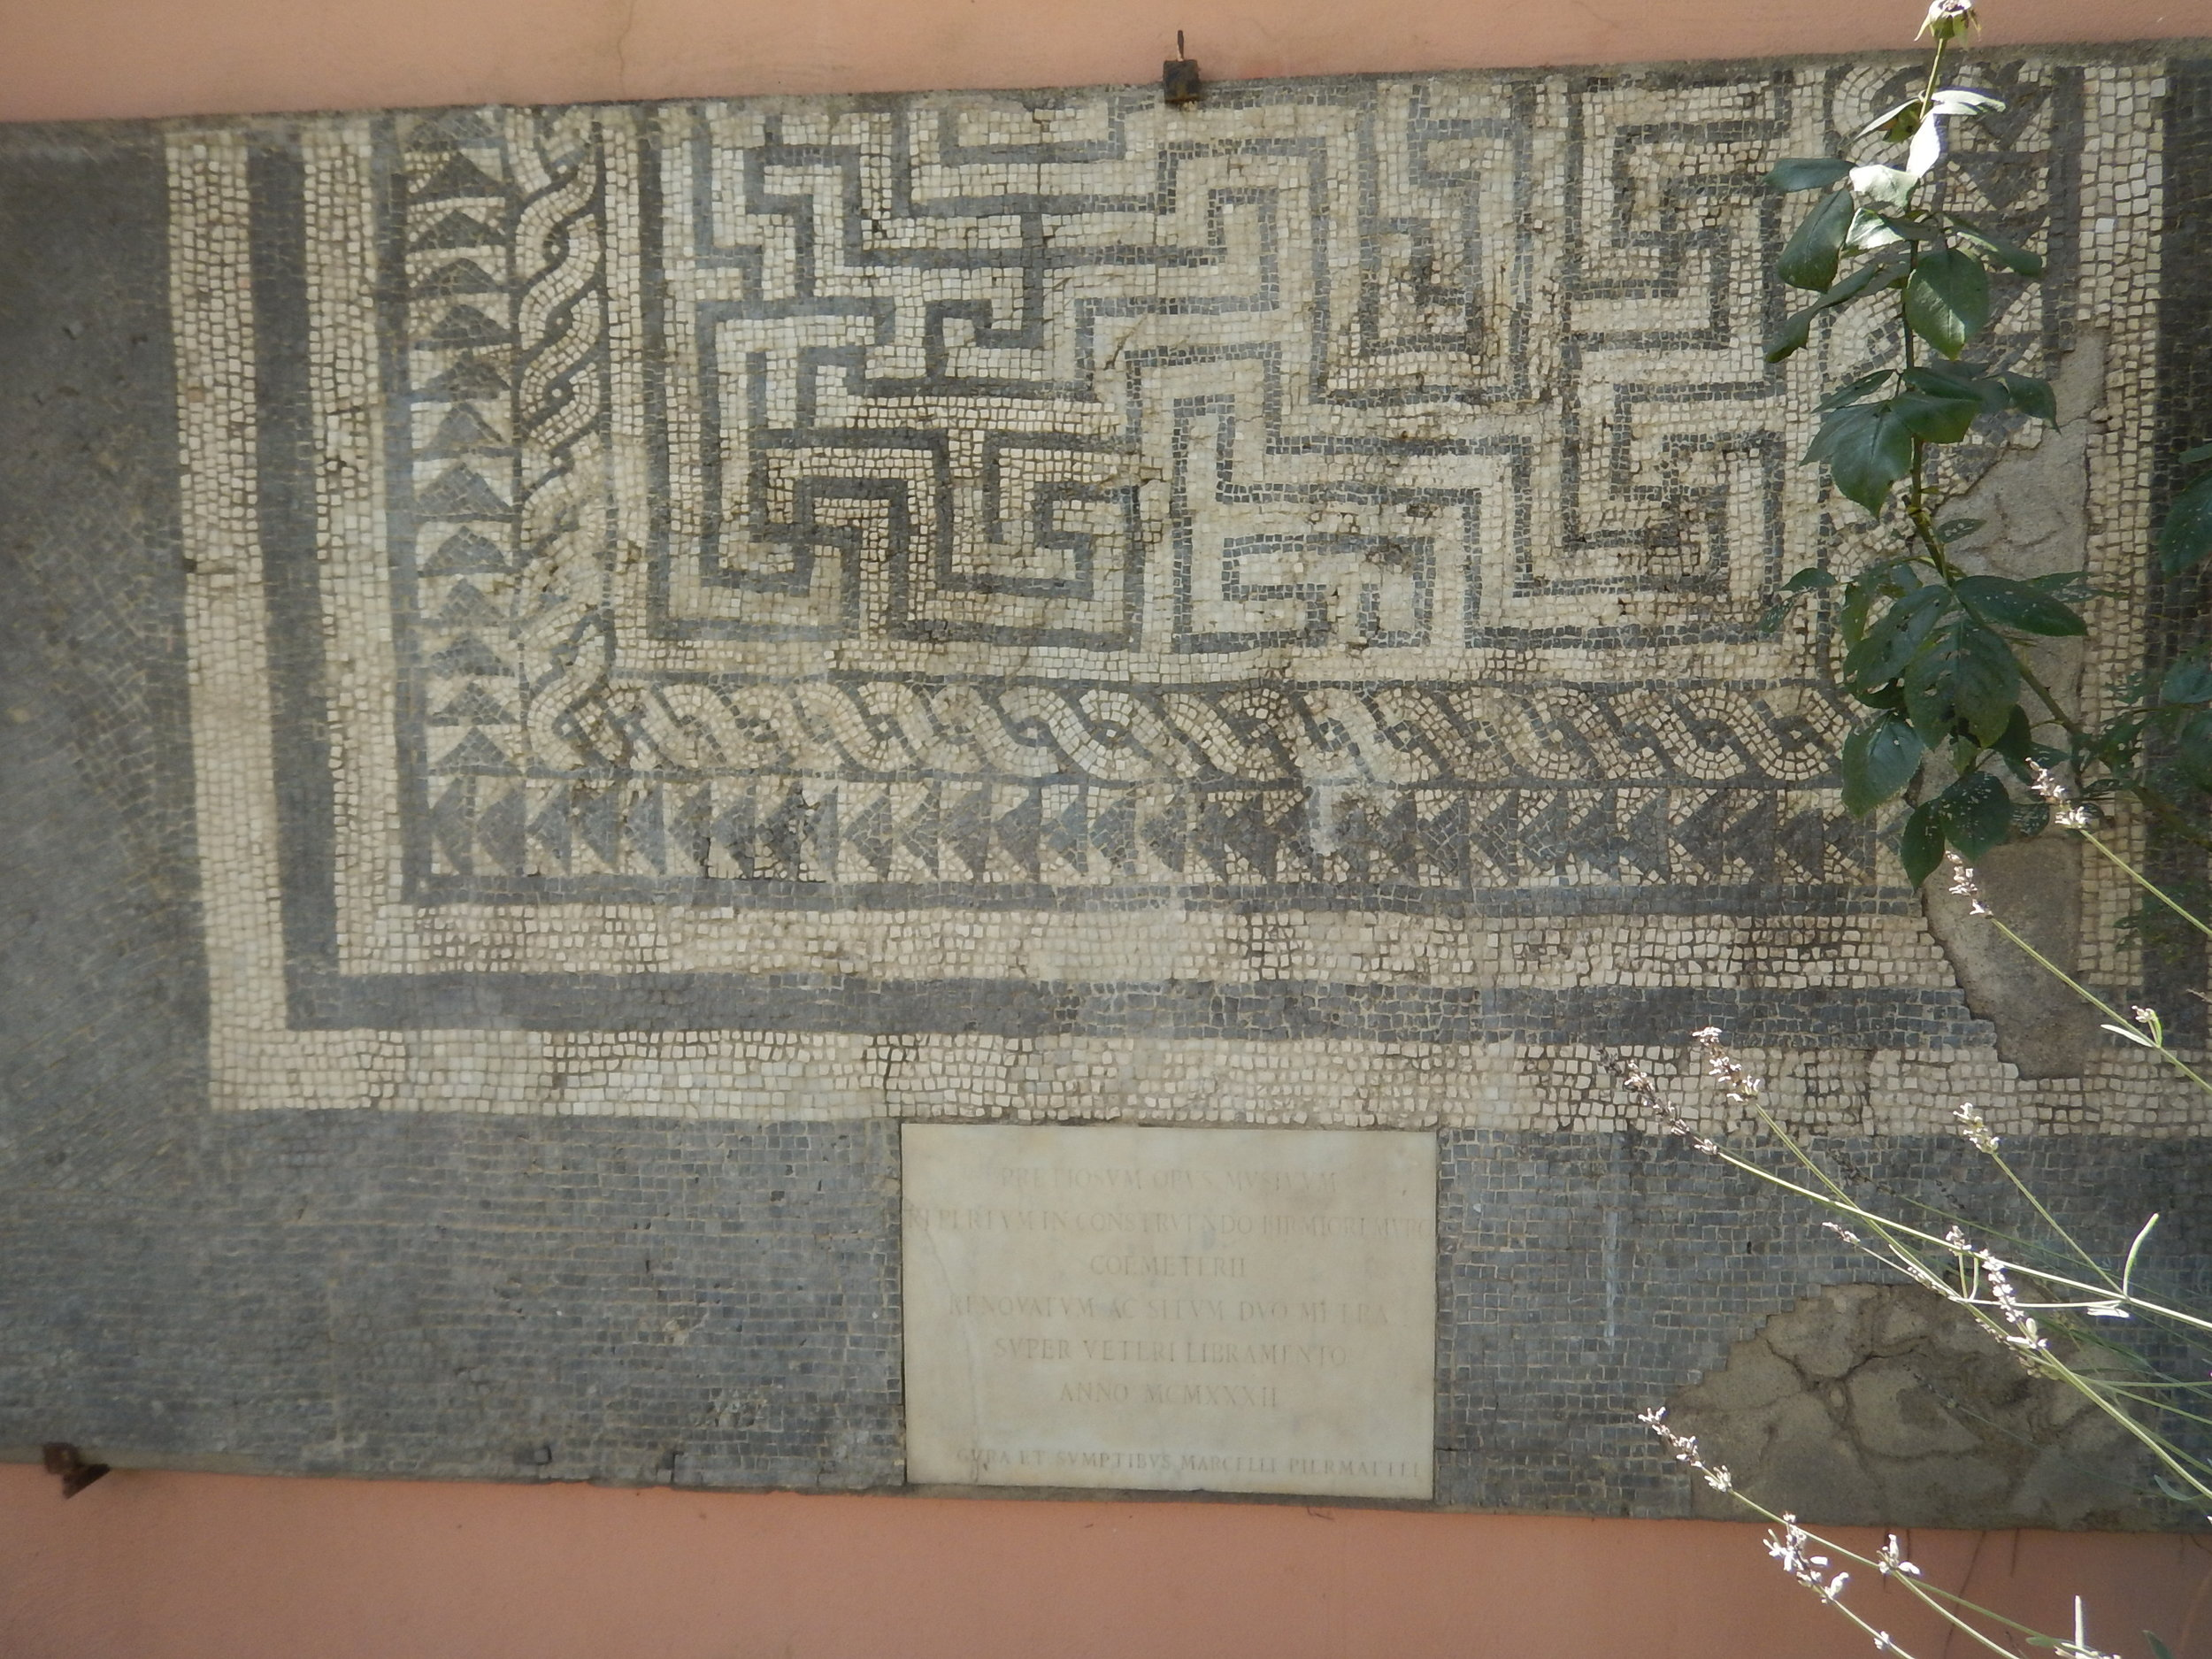 Some carefully preserved and ancient mosaicing.